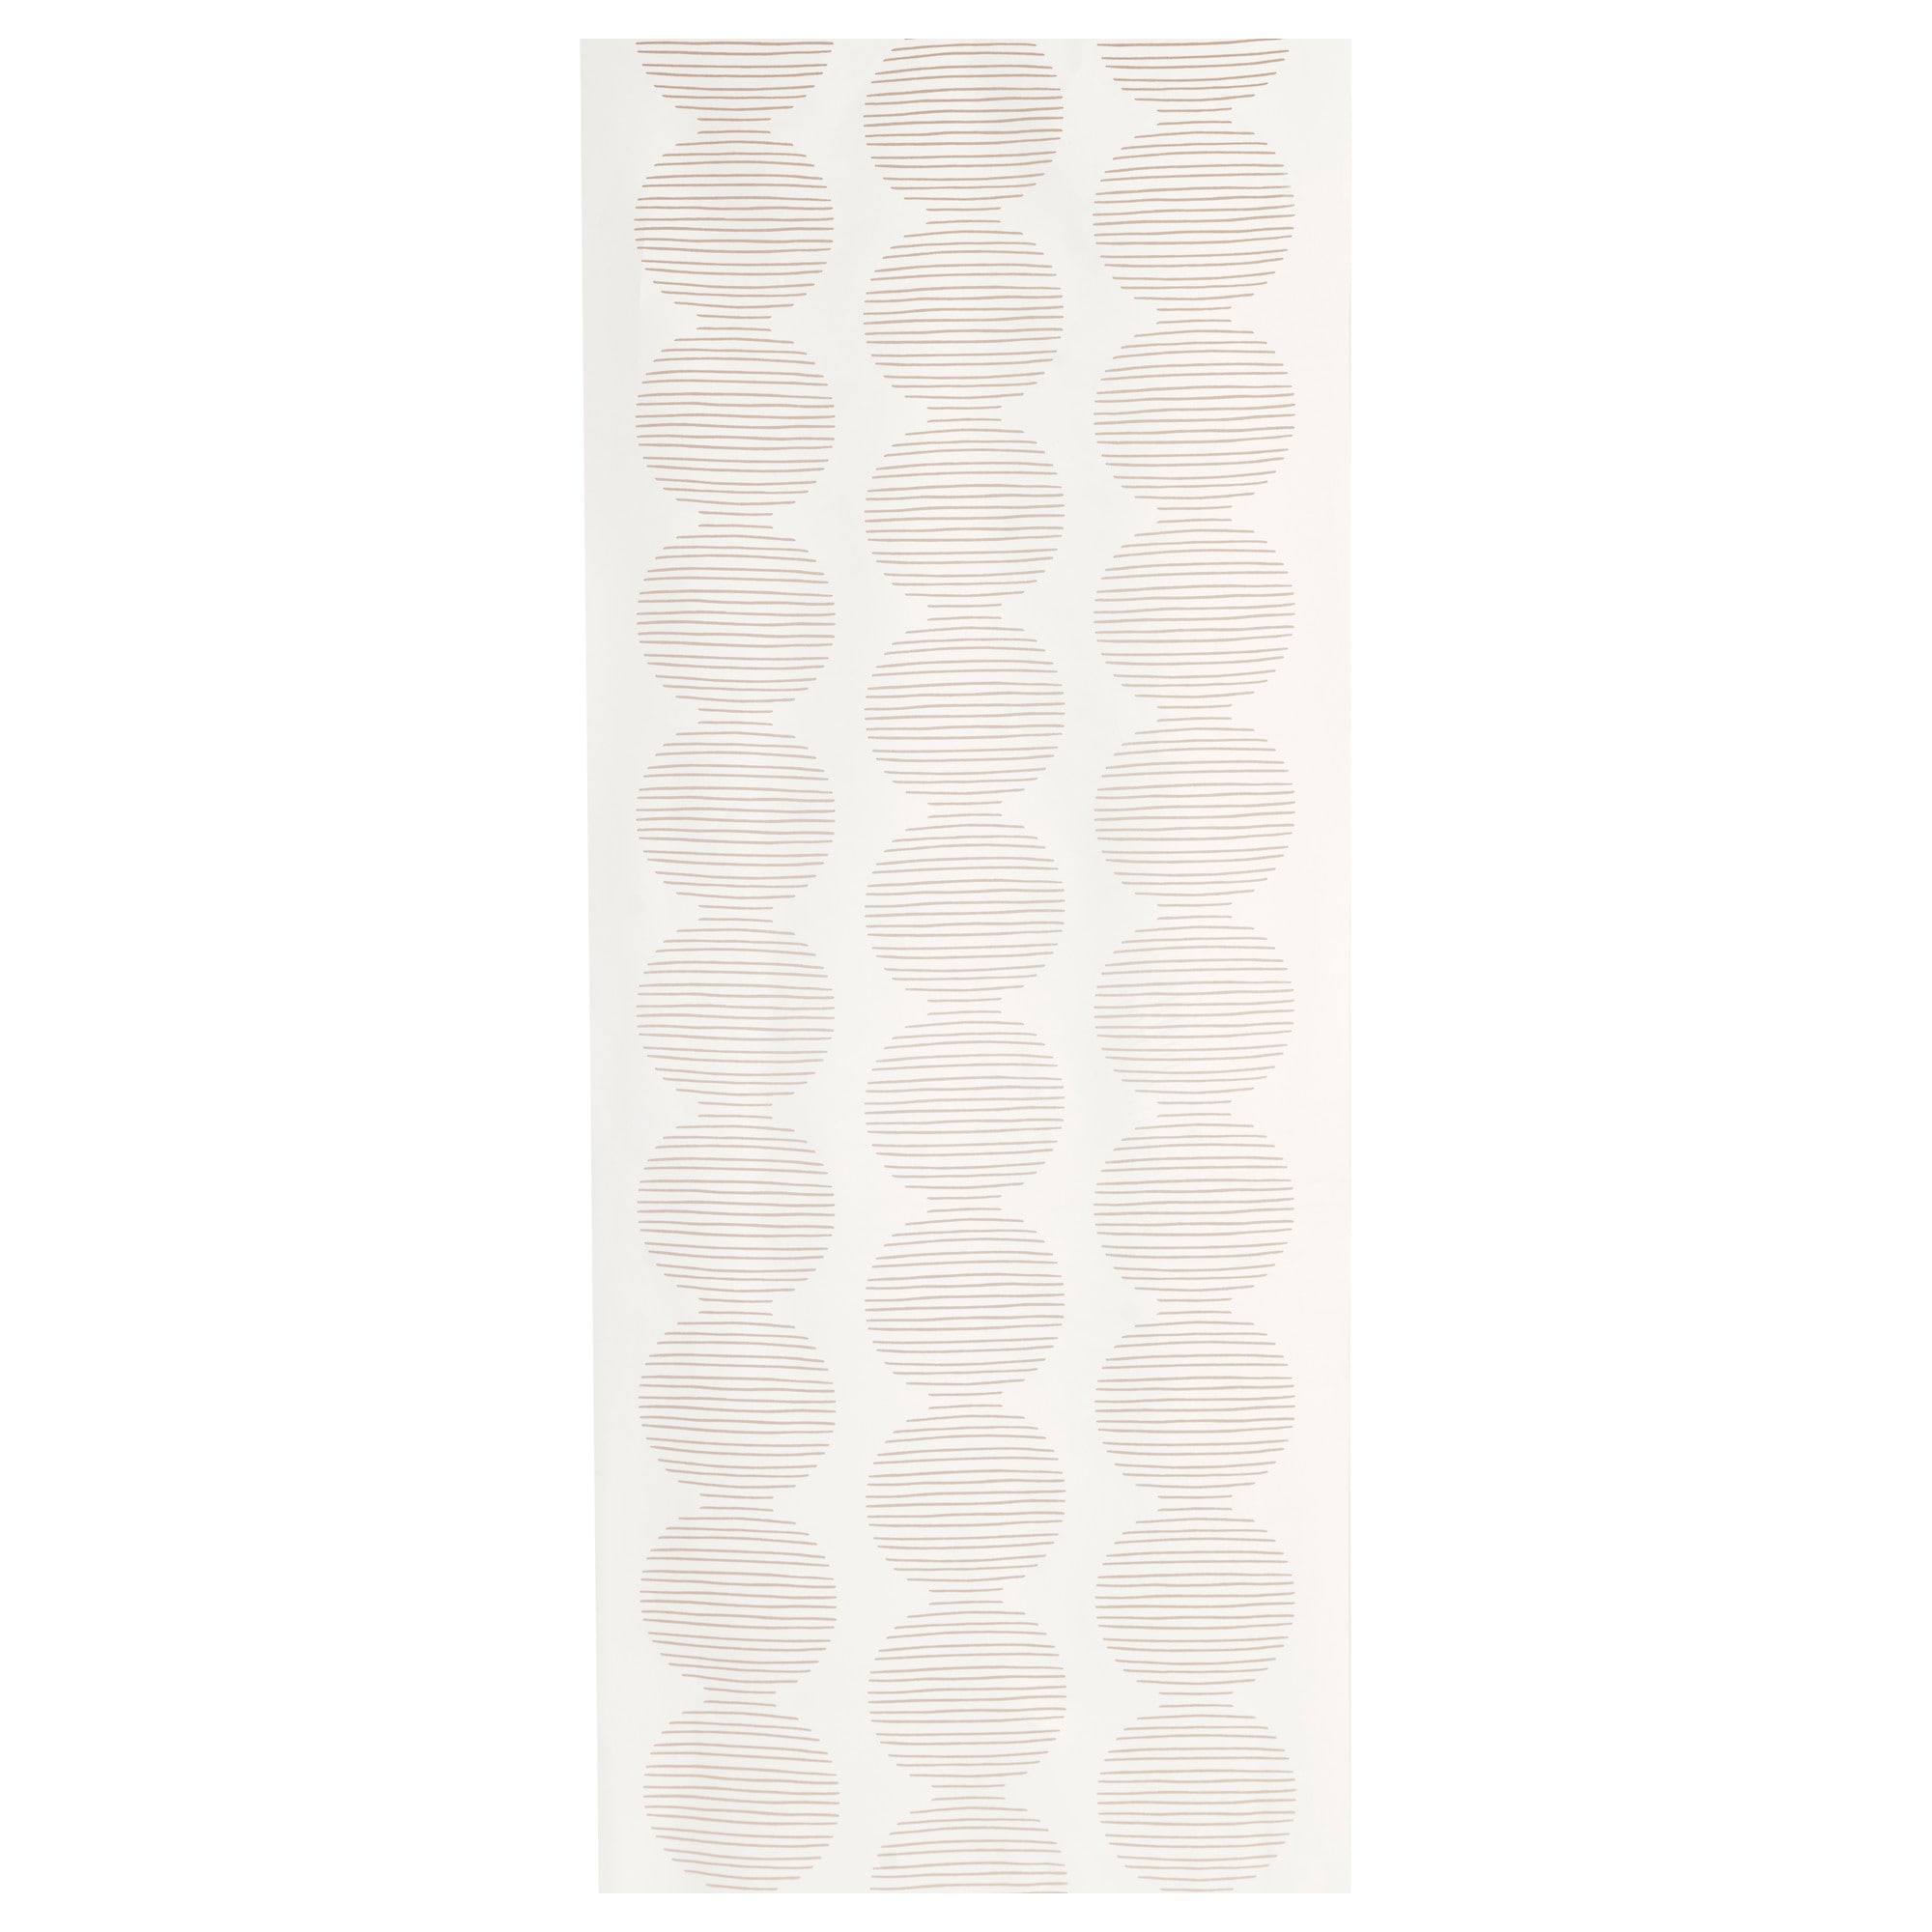 Ikea panel curtains - Inter Ikea Systems B V 1999 2016 Privacy Policy